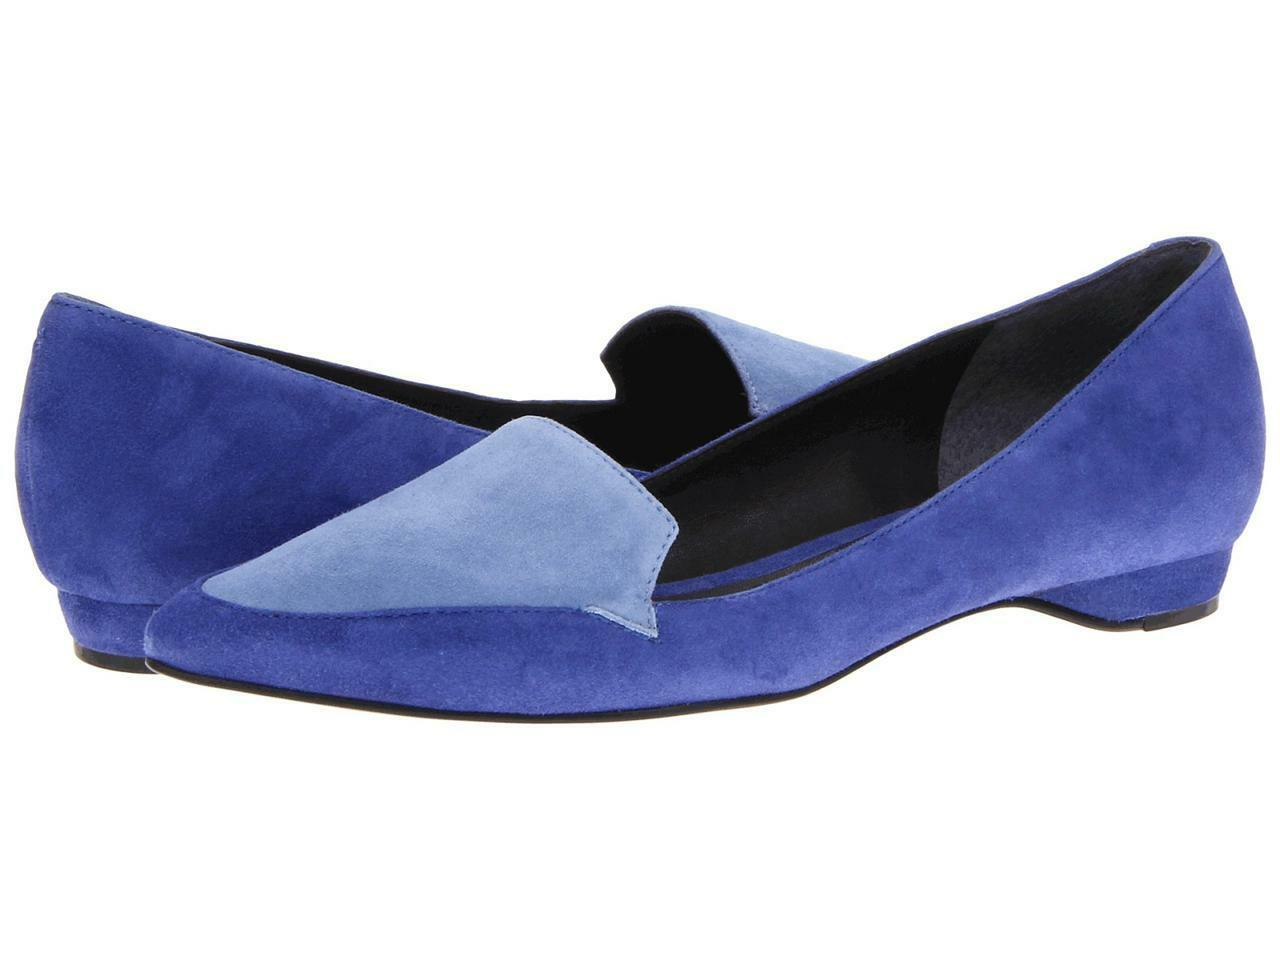 Pour La Victoire Astrid Navy dusty bleu kid suede flat leather slip-on pointed